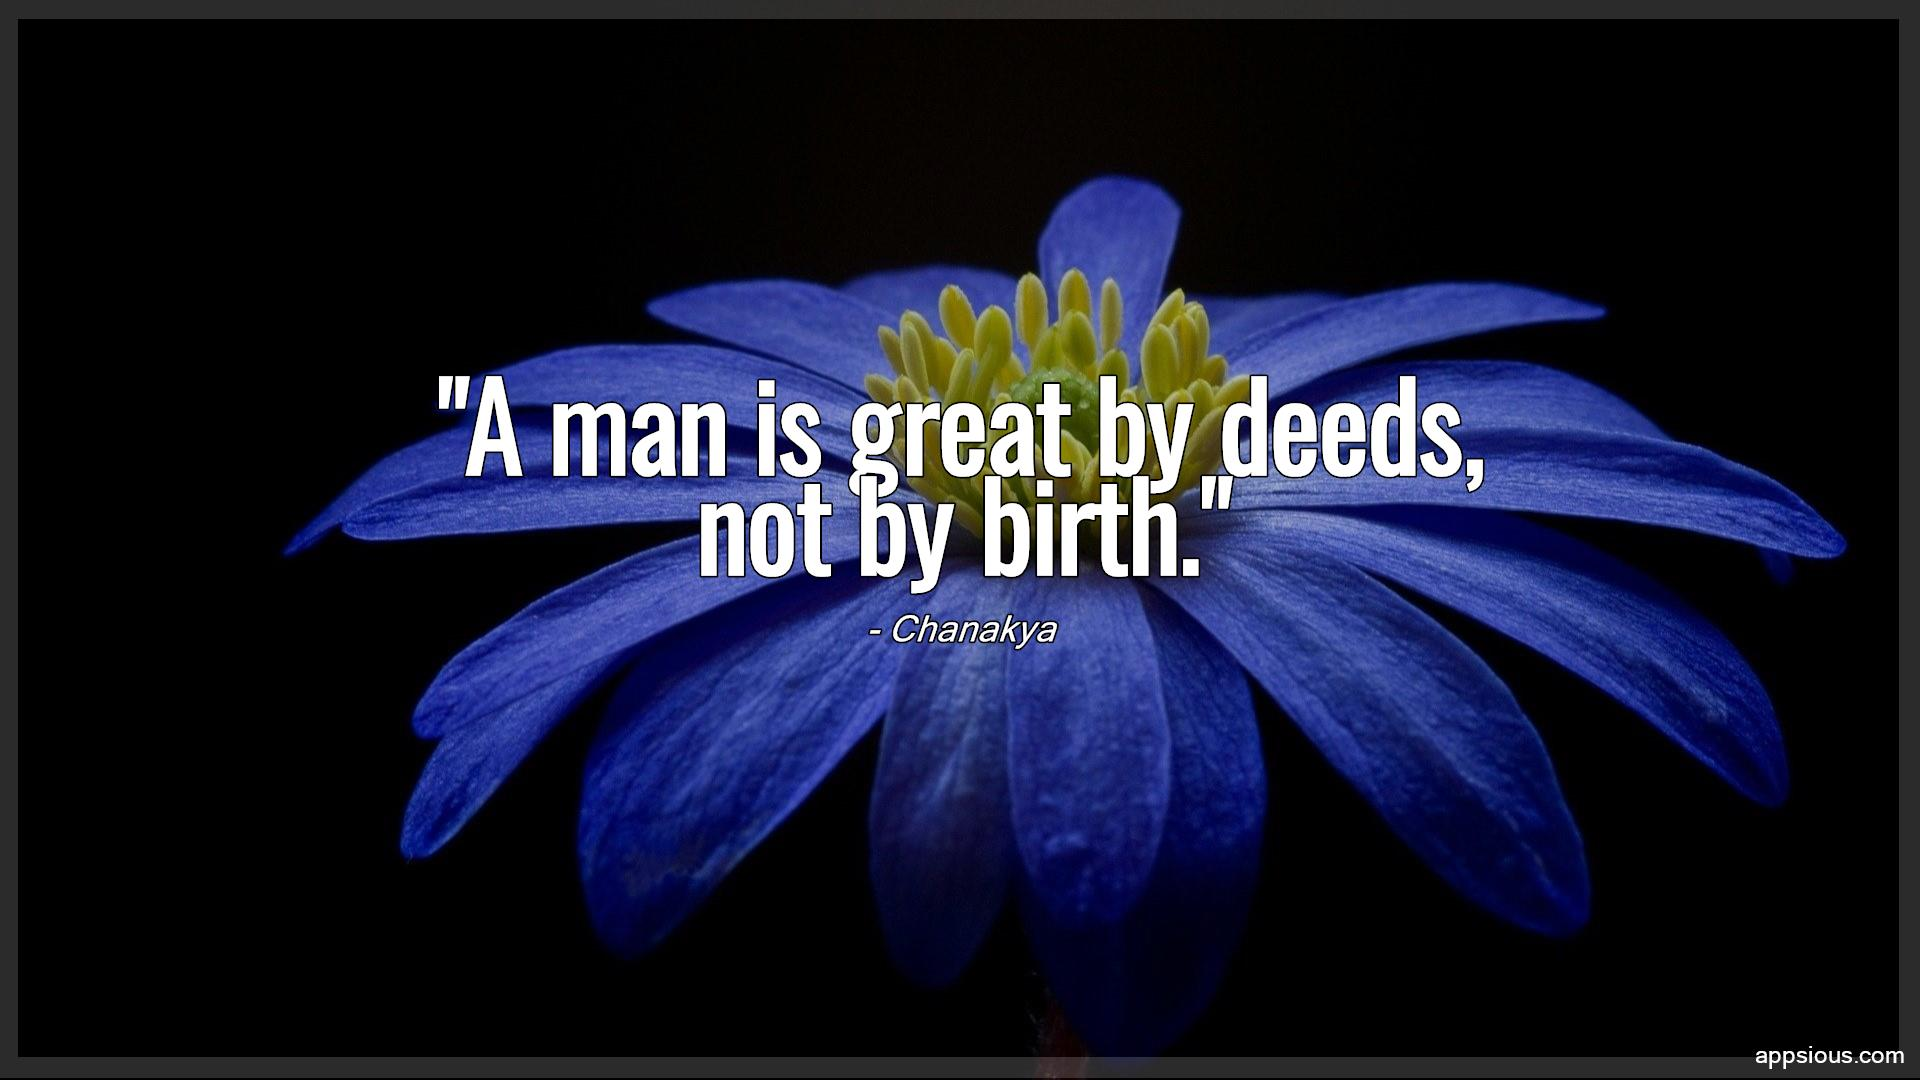 A man is great by deeds, not by birth.